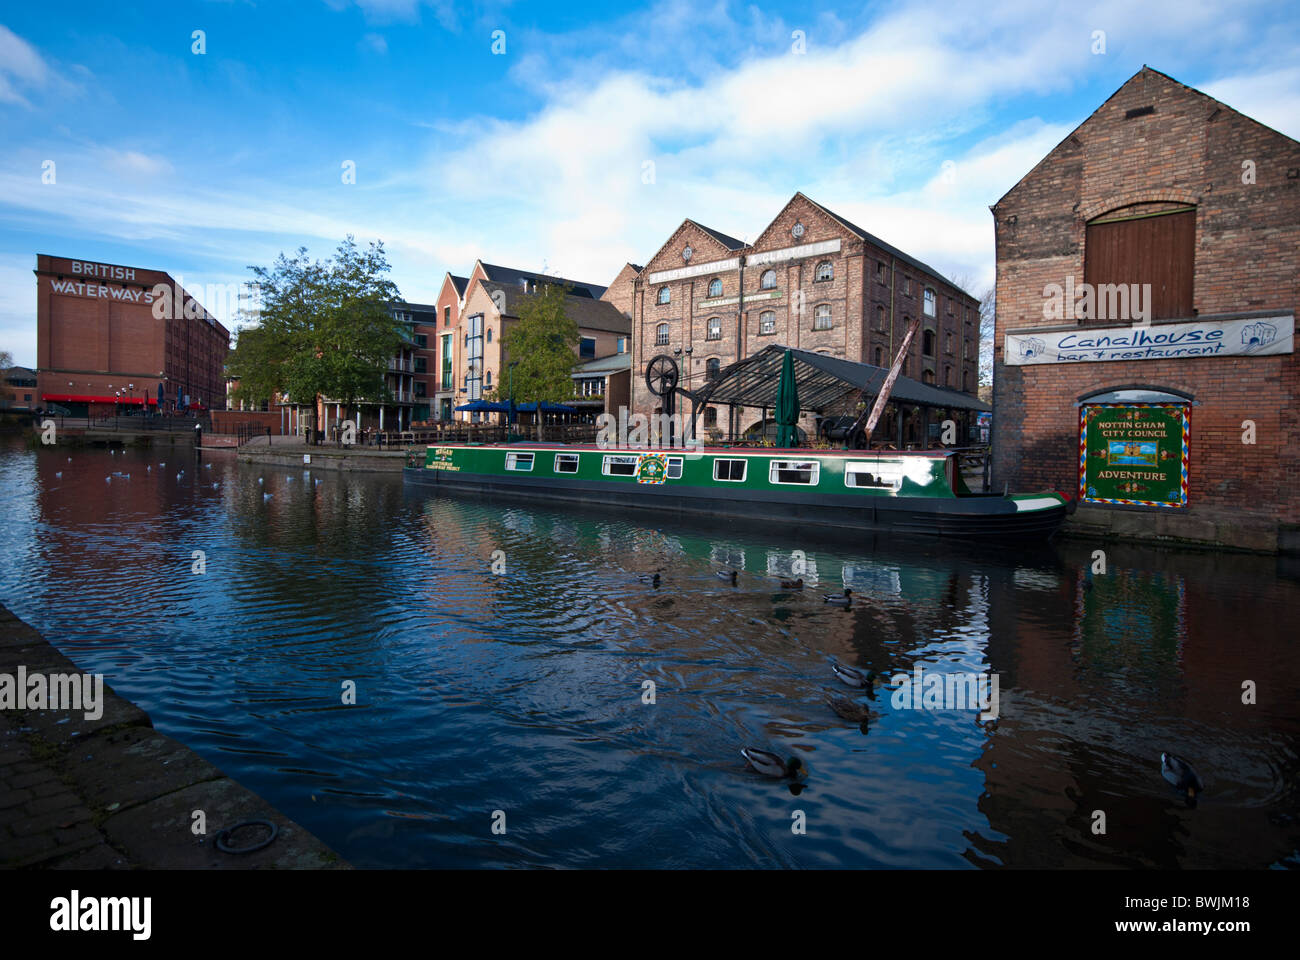 The Nottingham Canal, Nottingham, England UK. - Stock Image